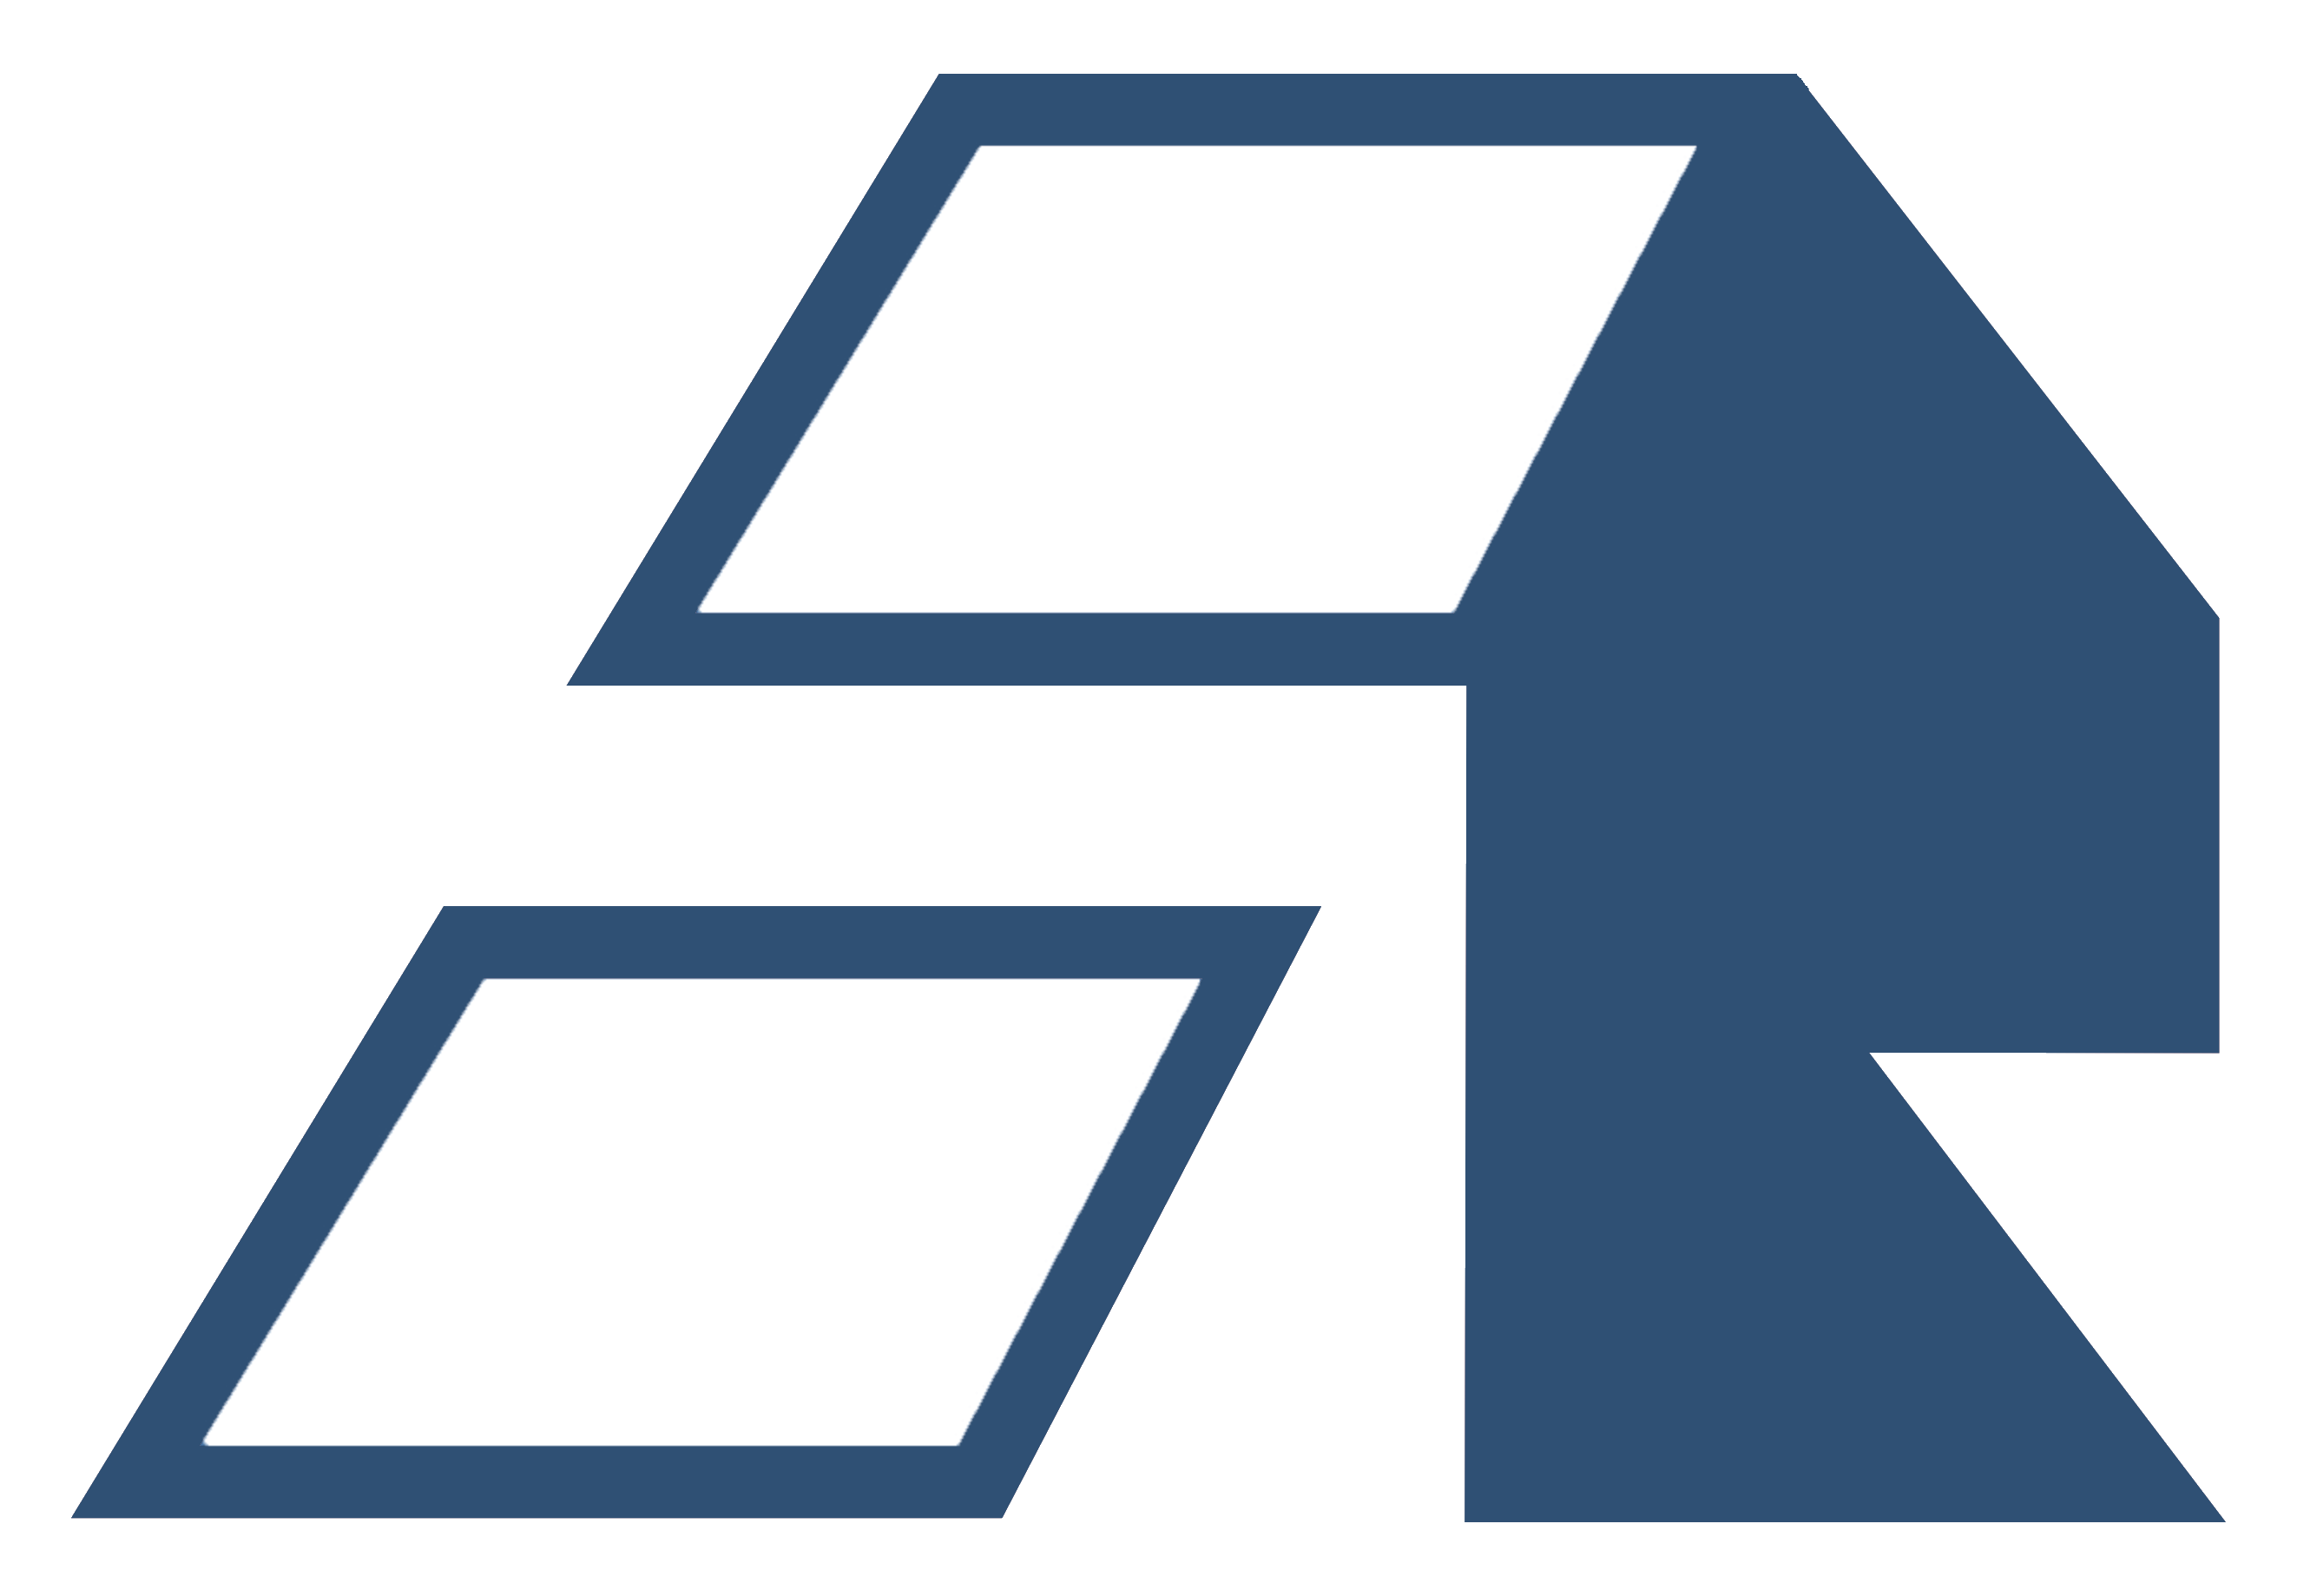 logo-blue-vector-no-center-2016_01_21-21_10_43-utc